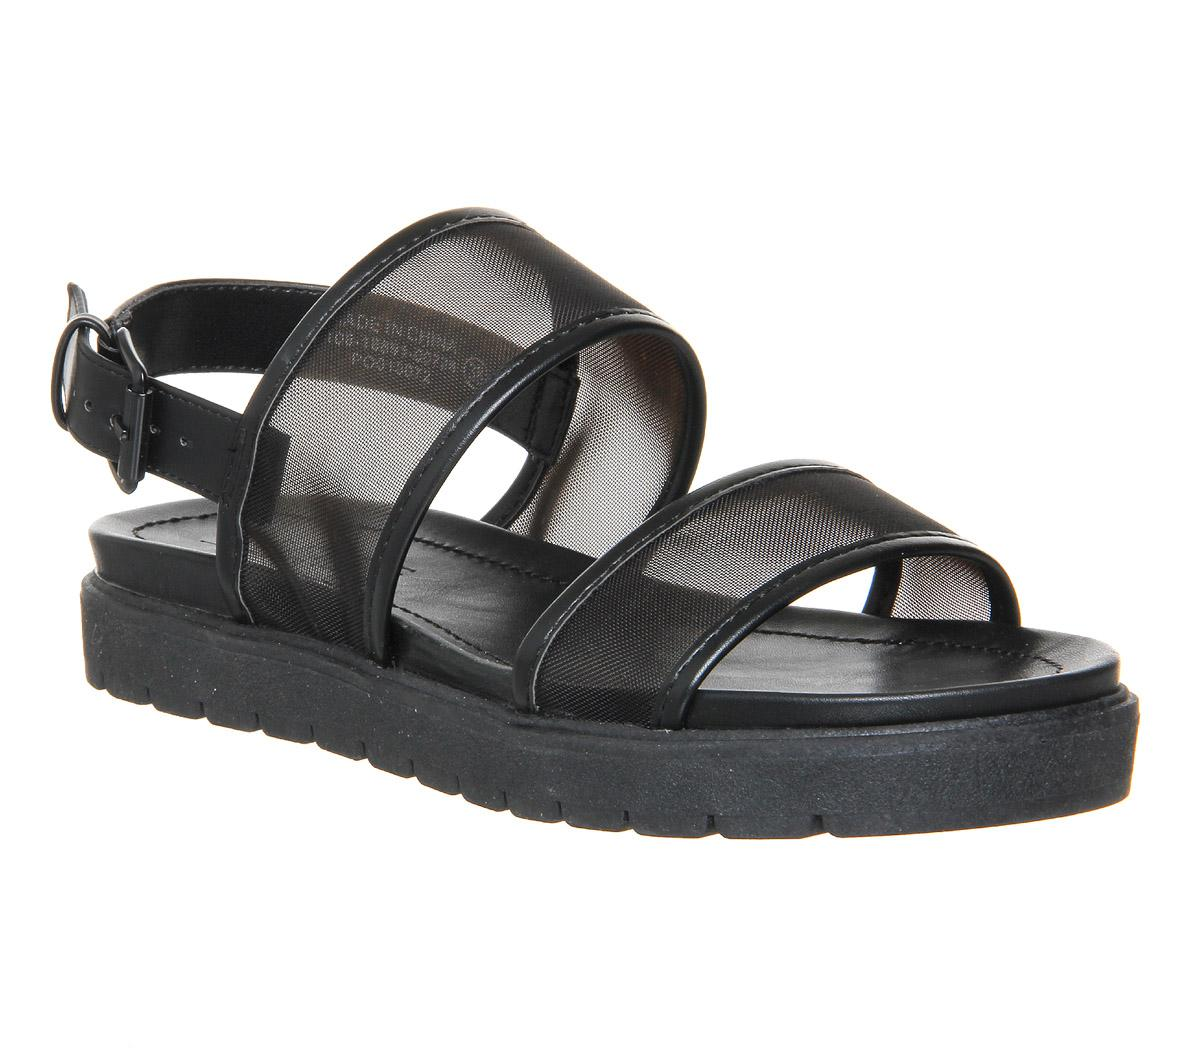 668a631ef Lyst - Office Optic Double Strap Sling Sandals in Black